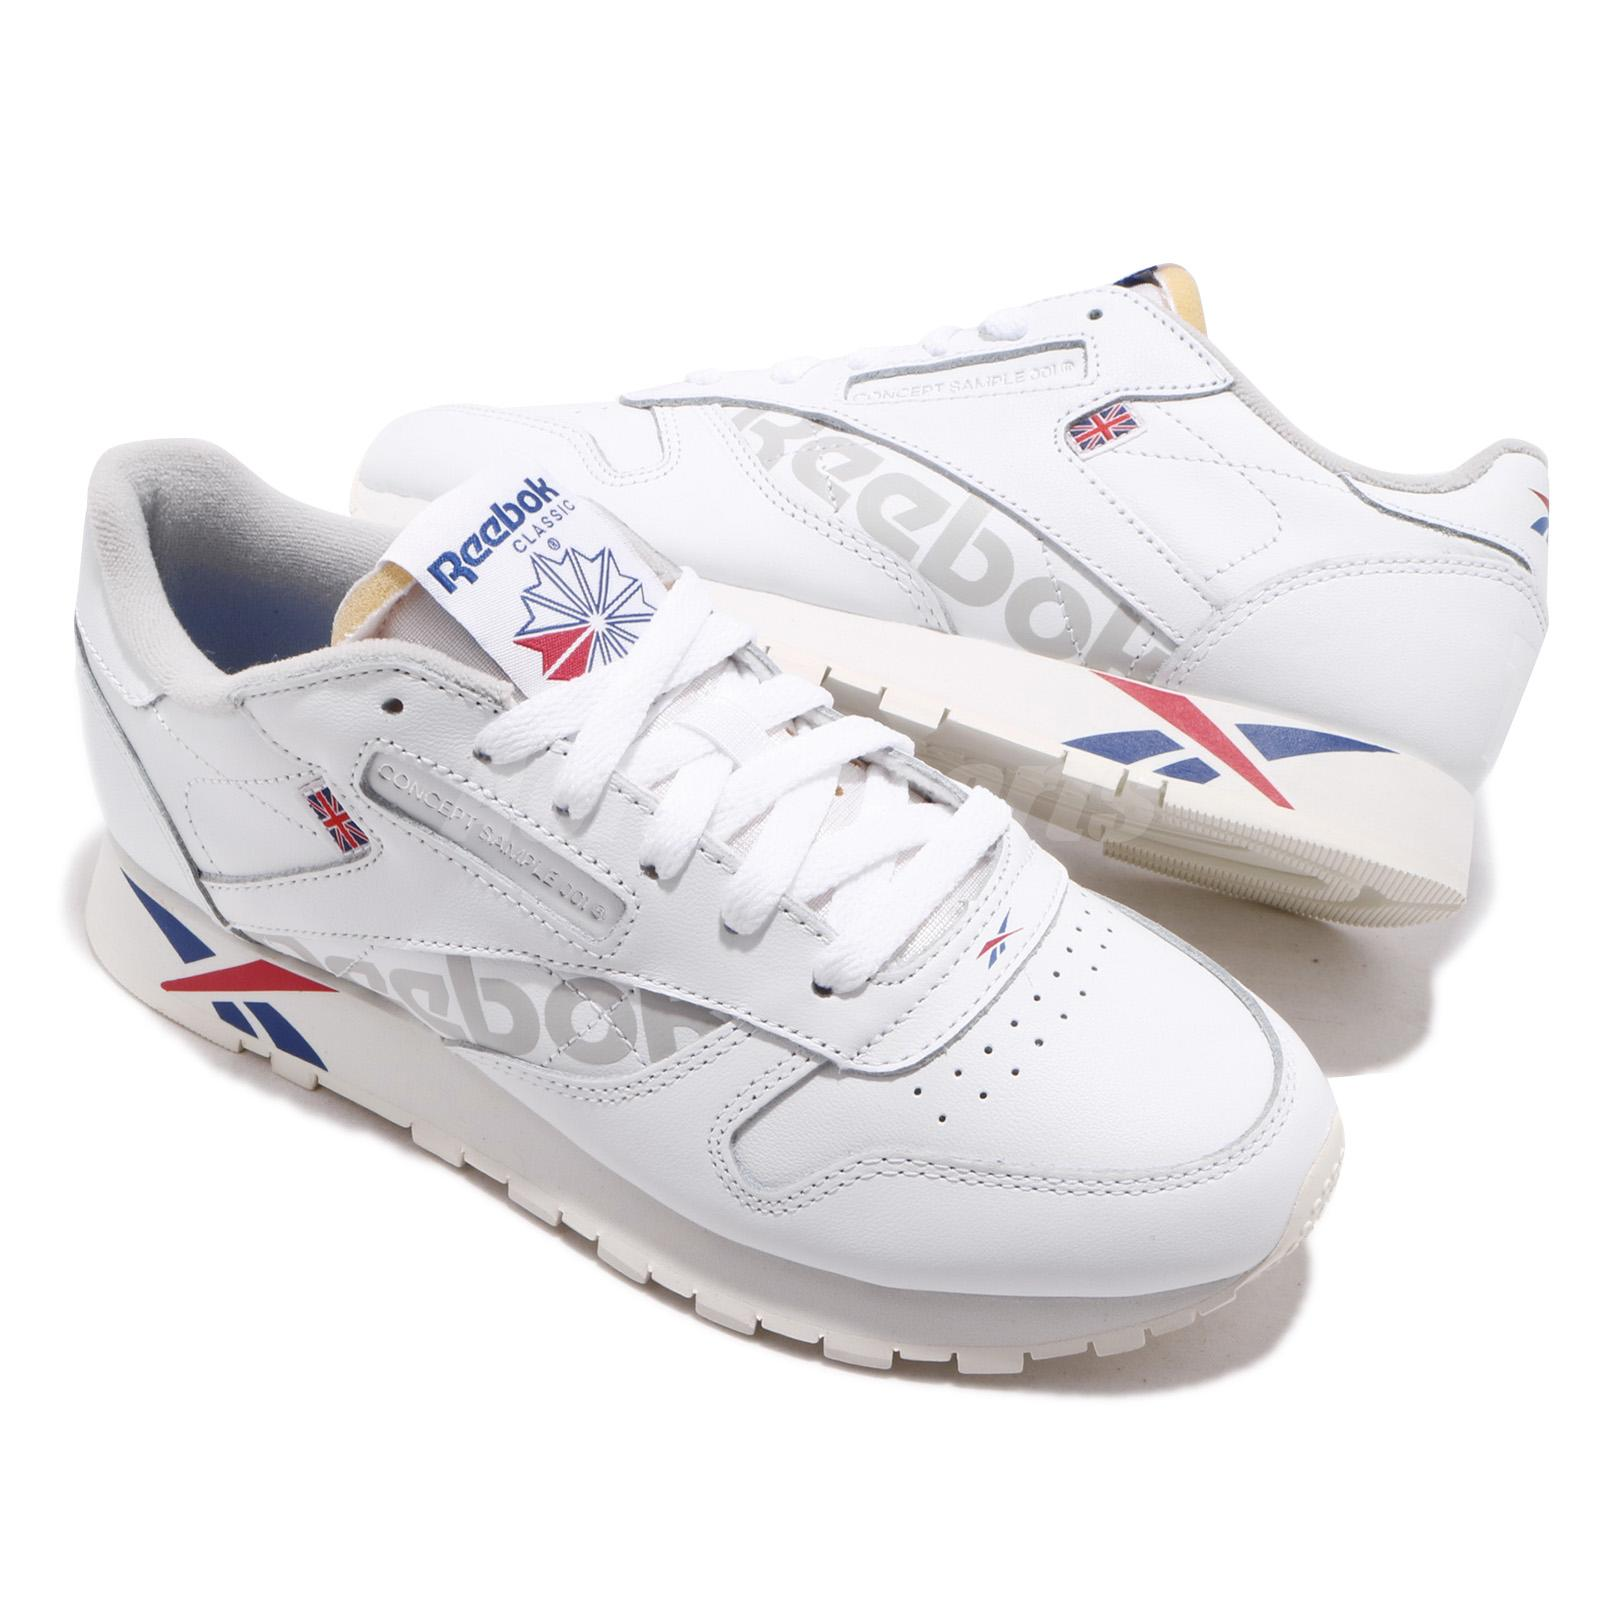 812d7f7a4c6 Reebok Classic Leather Altered MU White Dark Royal Red Grey Men ...